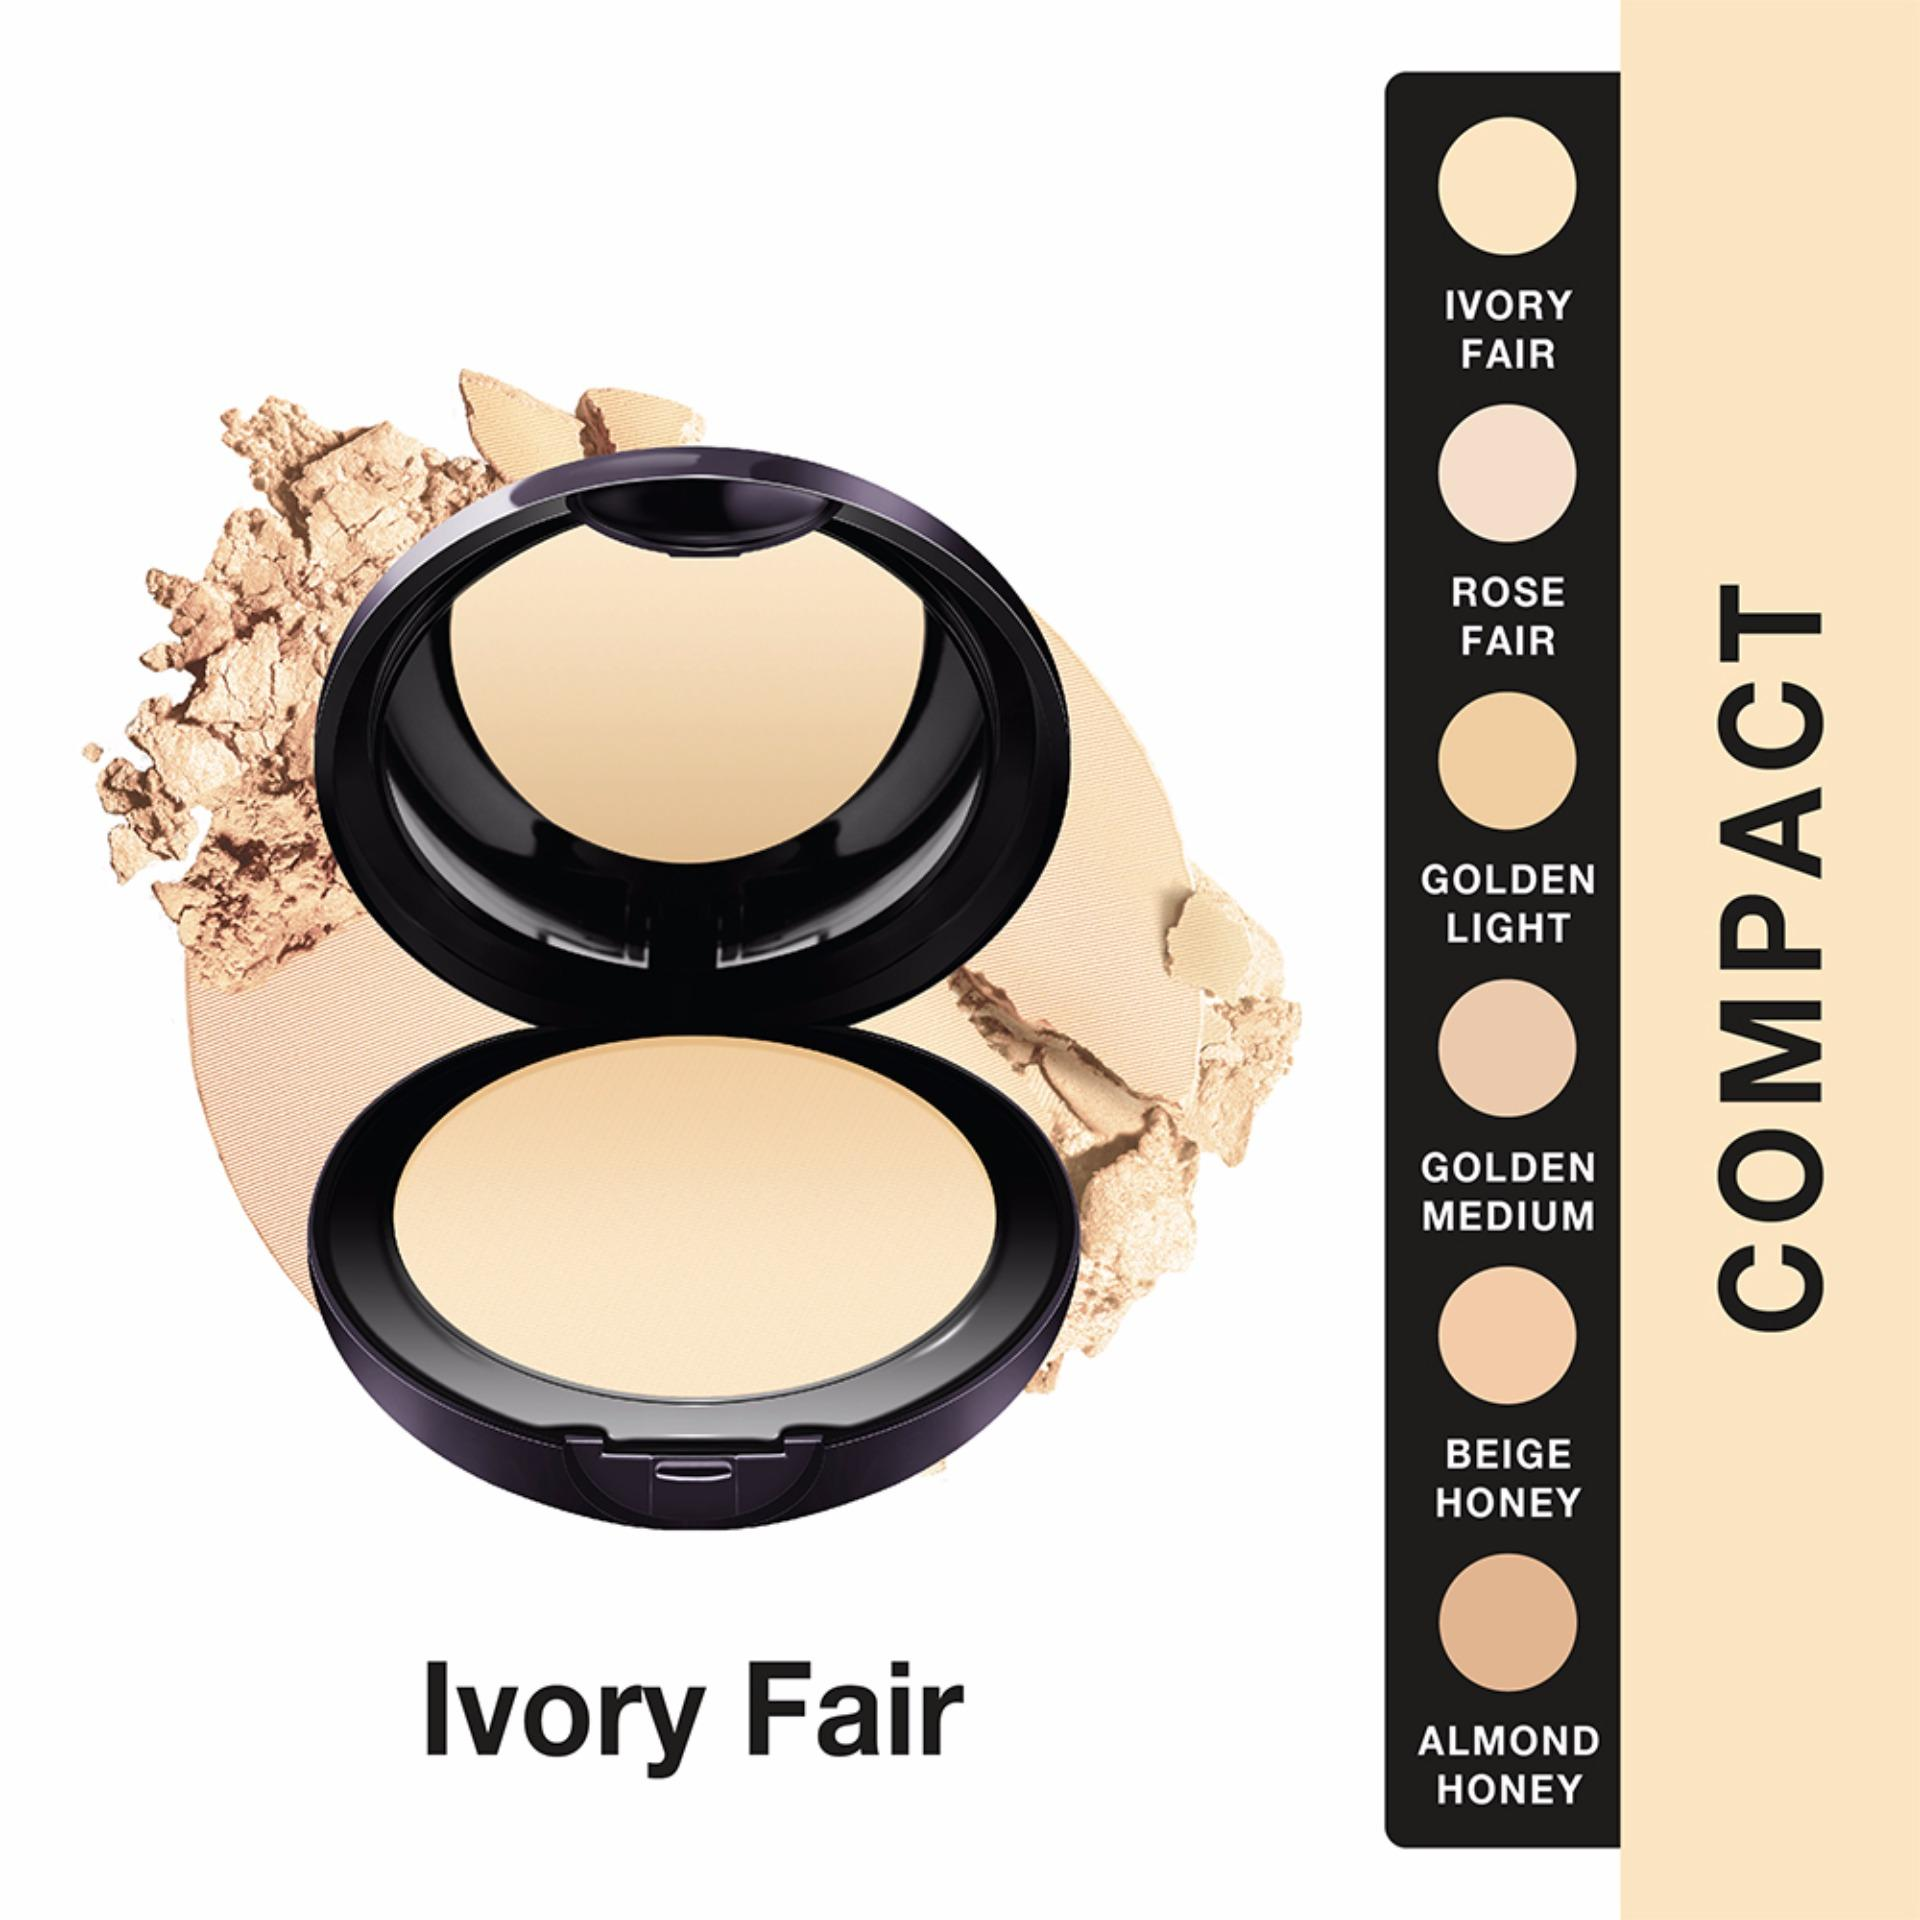 Beli Lakme Absolute Reinvent White Intense Wet And Dry Compact Powder Ivory Fair Kredit Indonesia